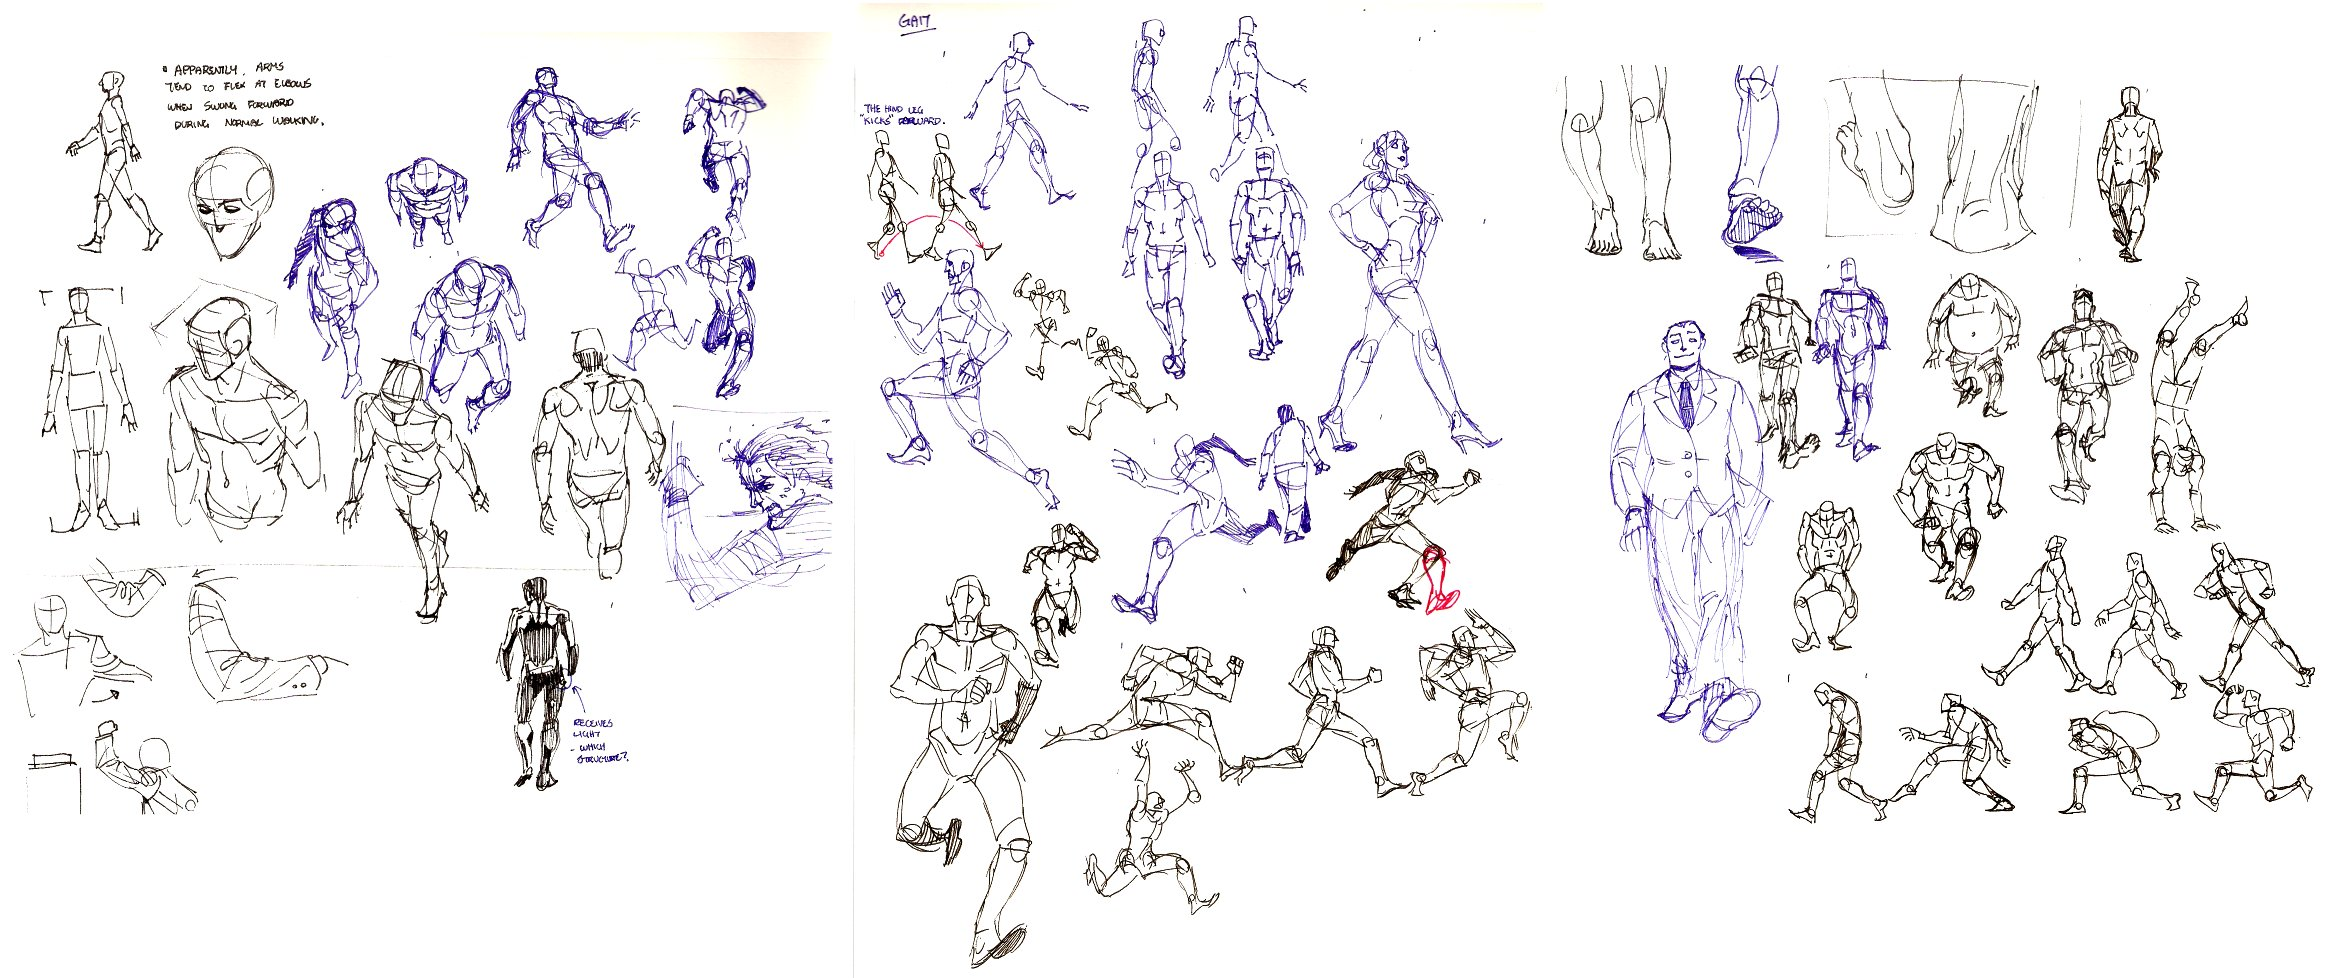 motion study: walking by archvermin